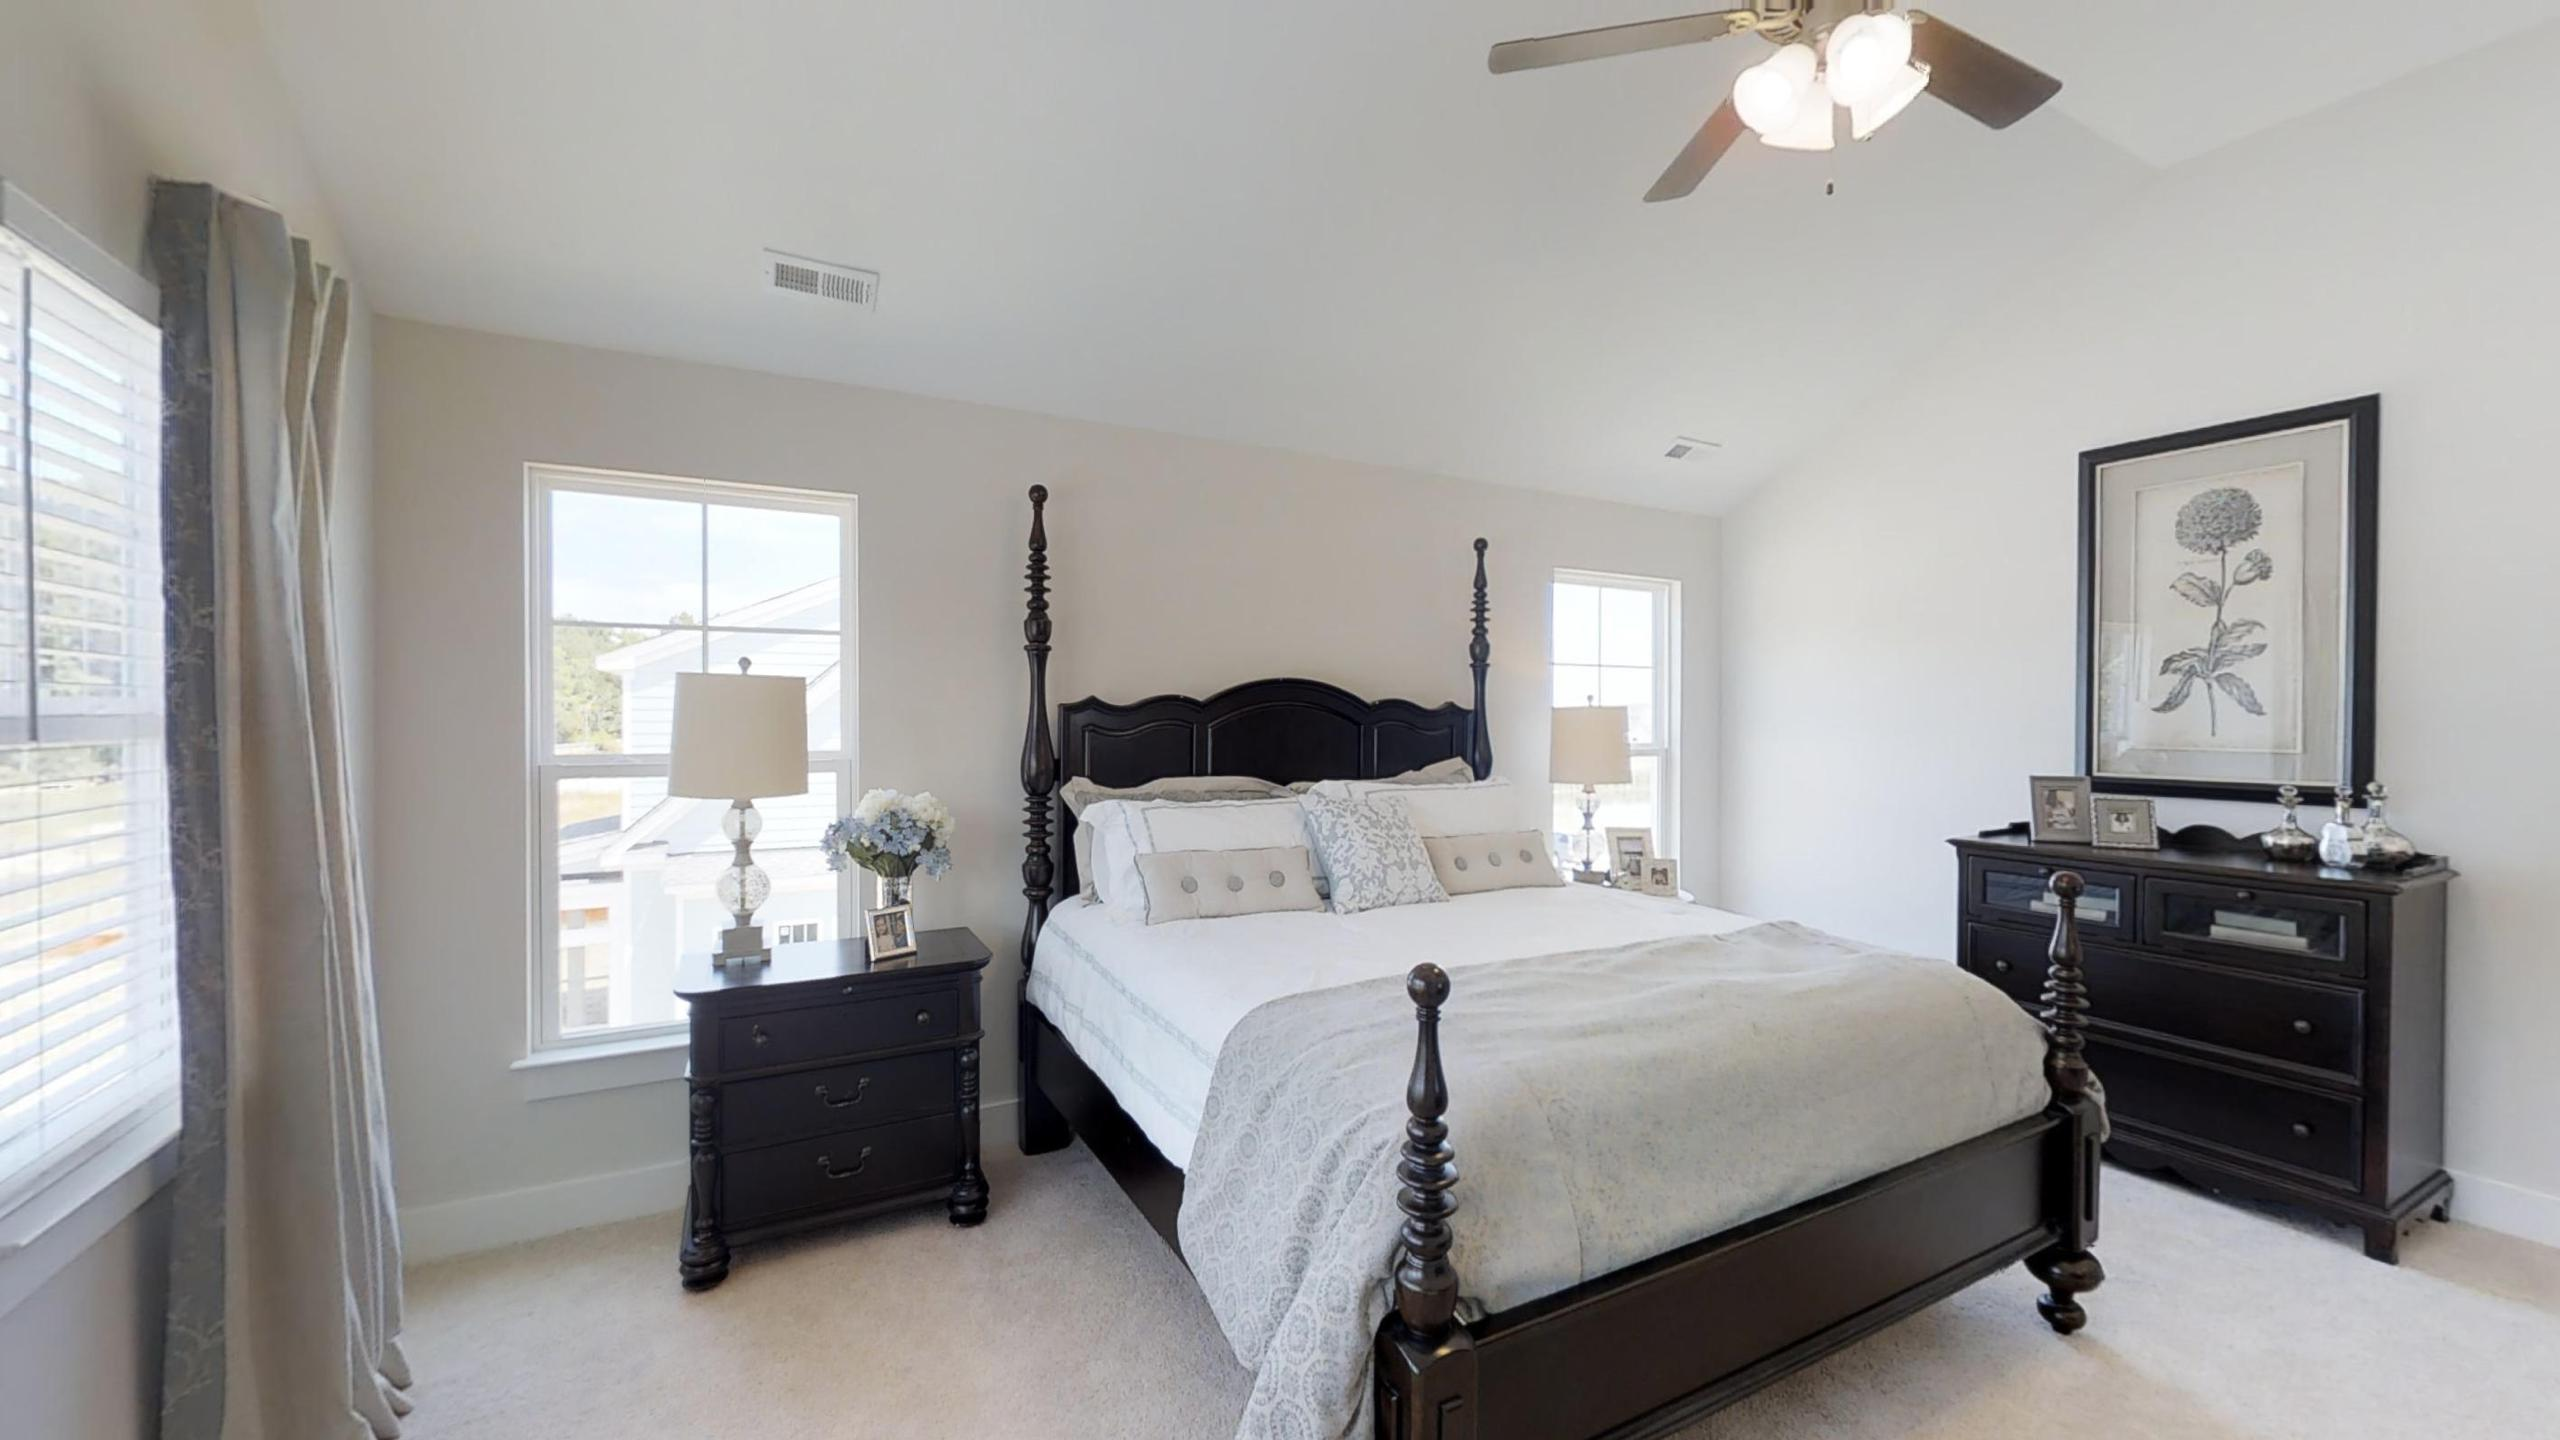 Bedroom featured in the Cottage Ashland By Stephen Alexander Homes in Outer Banks, NC